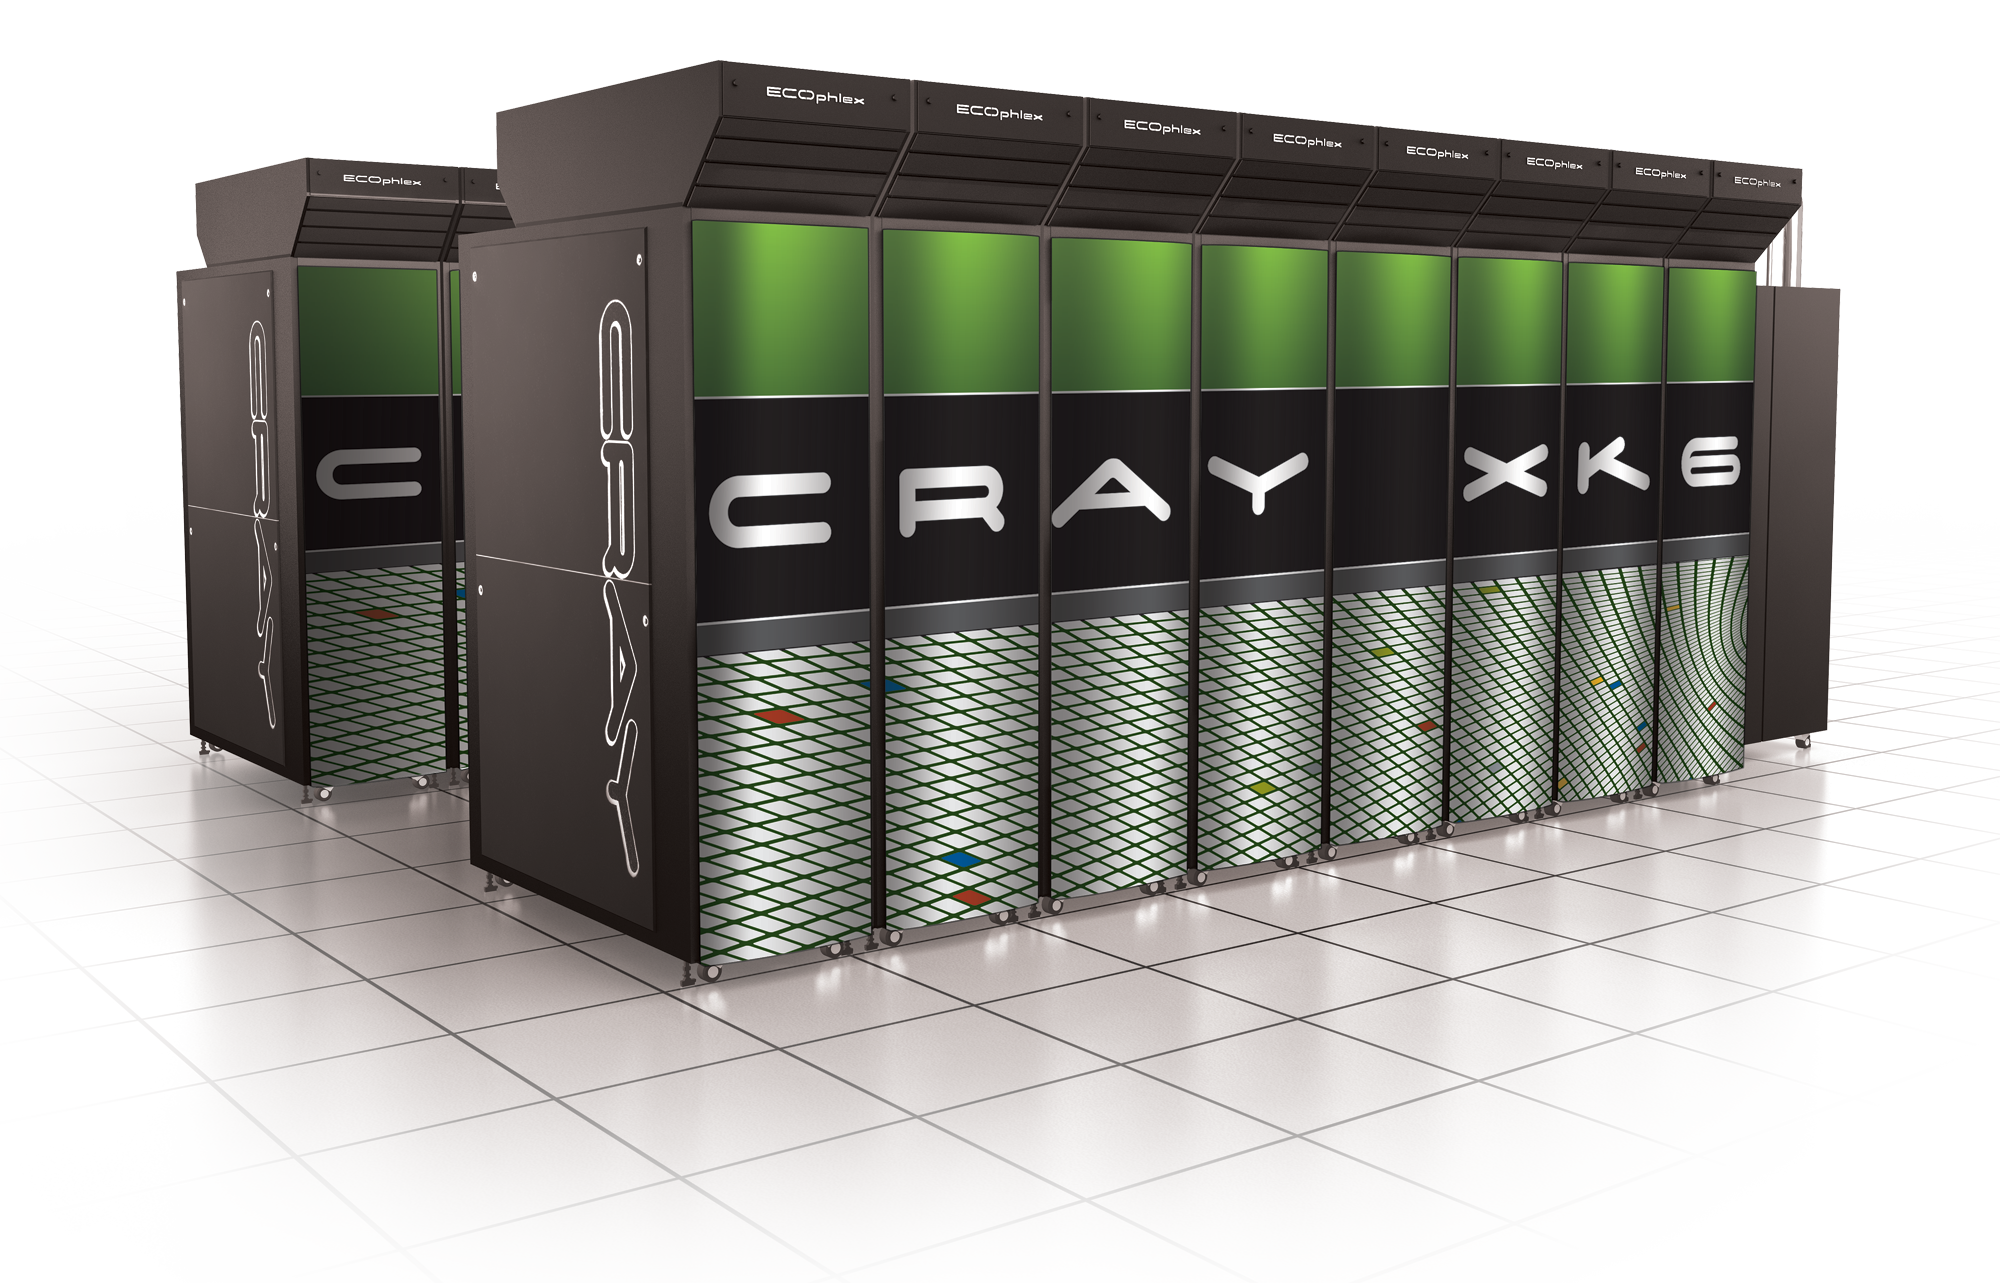 Cray-XK6-supercomputer